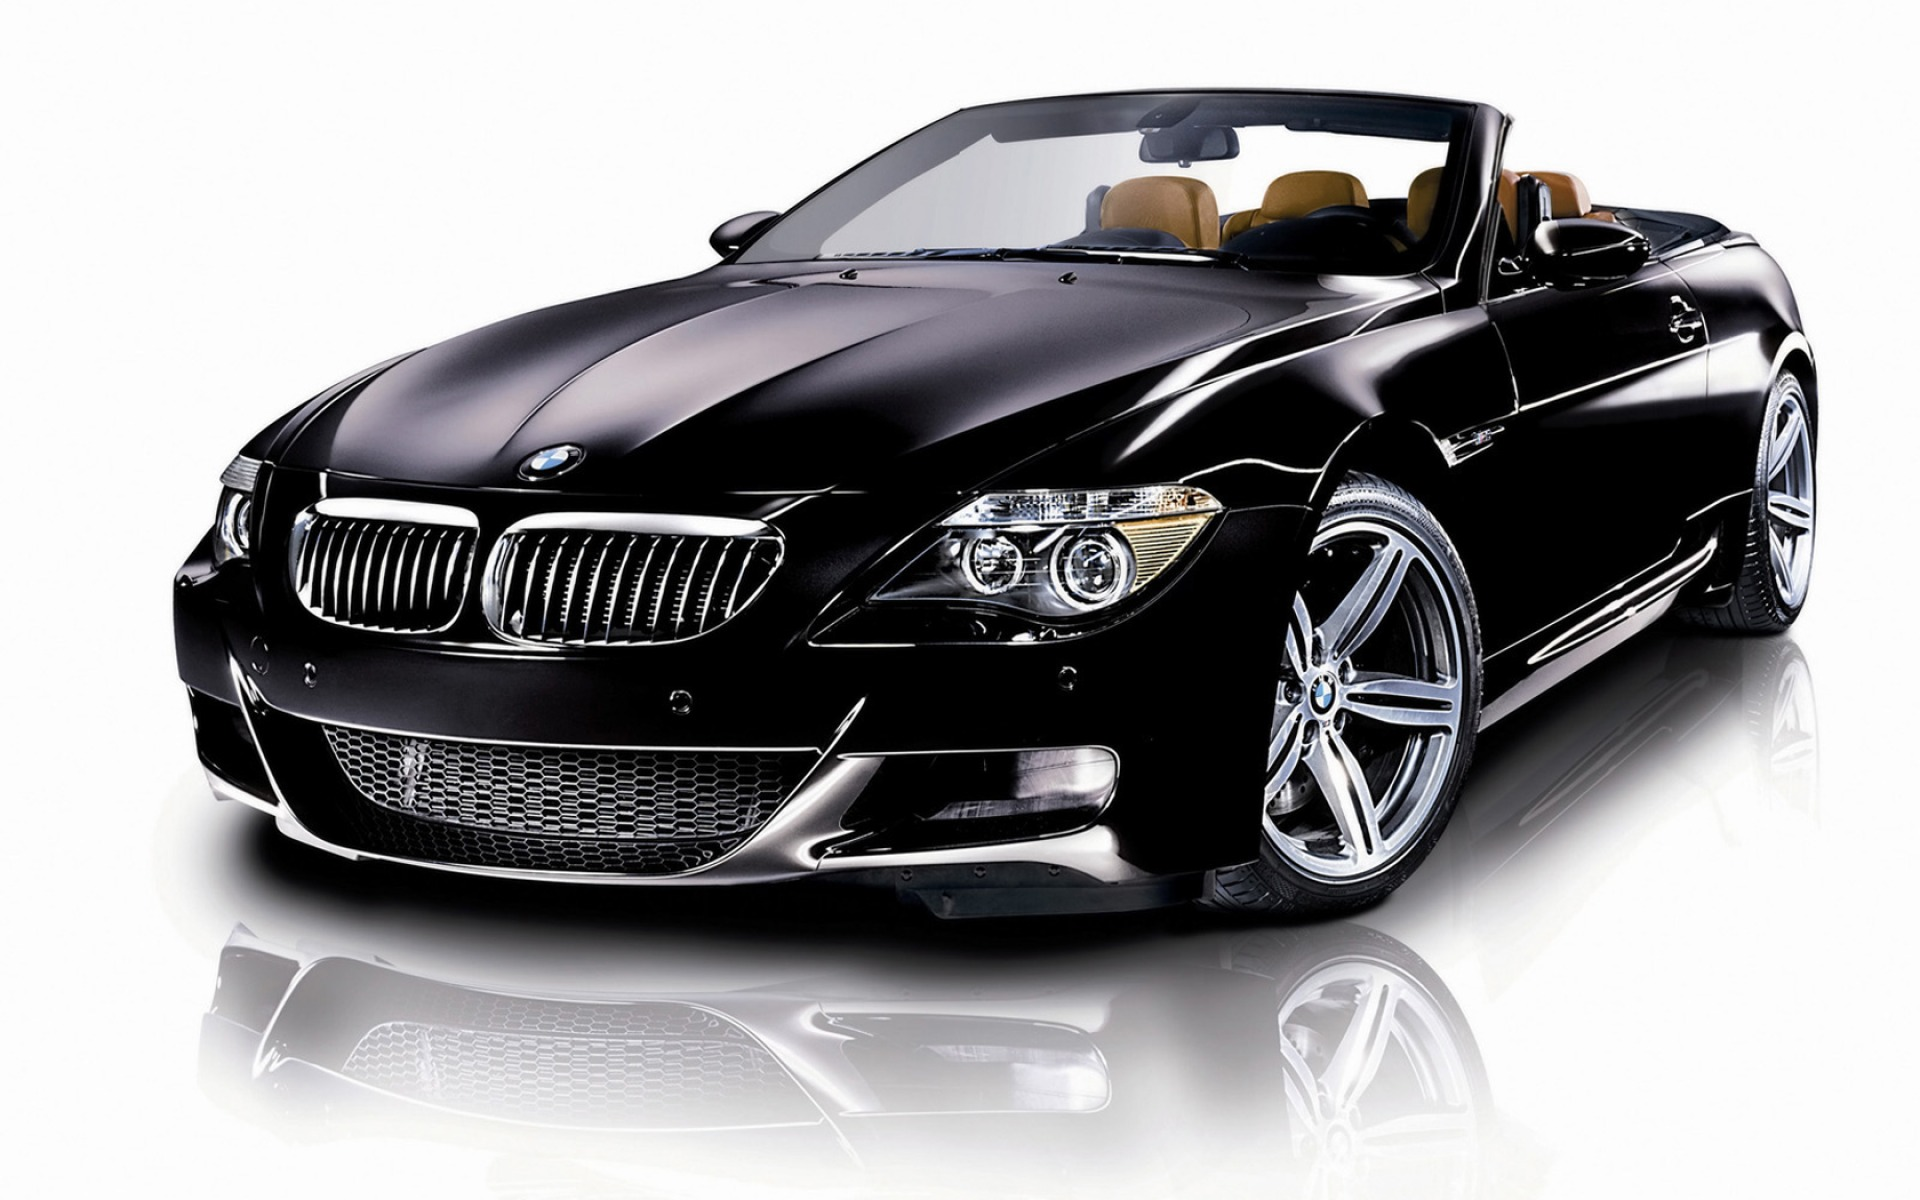 Ultrablogus  Surprising Bmw Car Wallpaper Wallpapers For Free Download About   With Goodlooking Bmw M Convertible Wallpaper Bmw Cars With Nice Vento Interior Also  Beetle Interior In Addition W Interior And Interior Nissan March As Well As Honda Accord  Interior Additionally  Camry Se Interior From Allfreedownloadcom With Ultrablogus  Goodlooking Bmw Car Wallpaper Wallpapers For Free Download About   With Nice Bmw M Convertible Wallpaper Bmw Cars And Surprising Vento Interior Also  Beetle Interior In Addition W Interior From Allfreedownloadcom